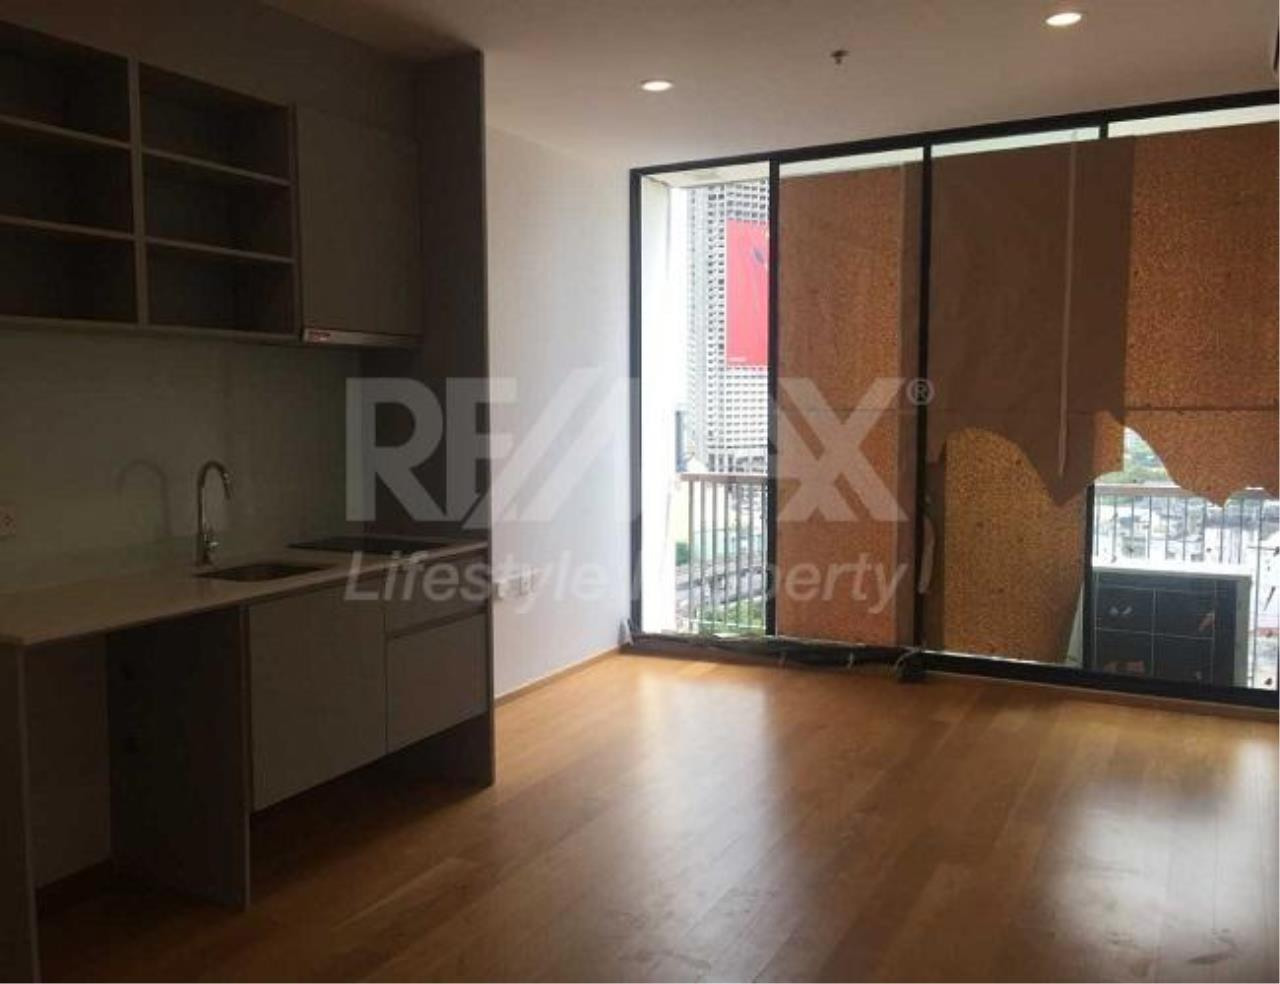 RE/MAX LifeStyle Property Agency's Noble Revo Silom 6